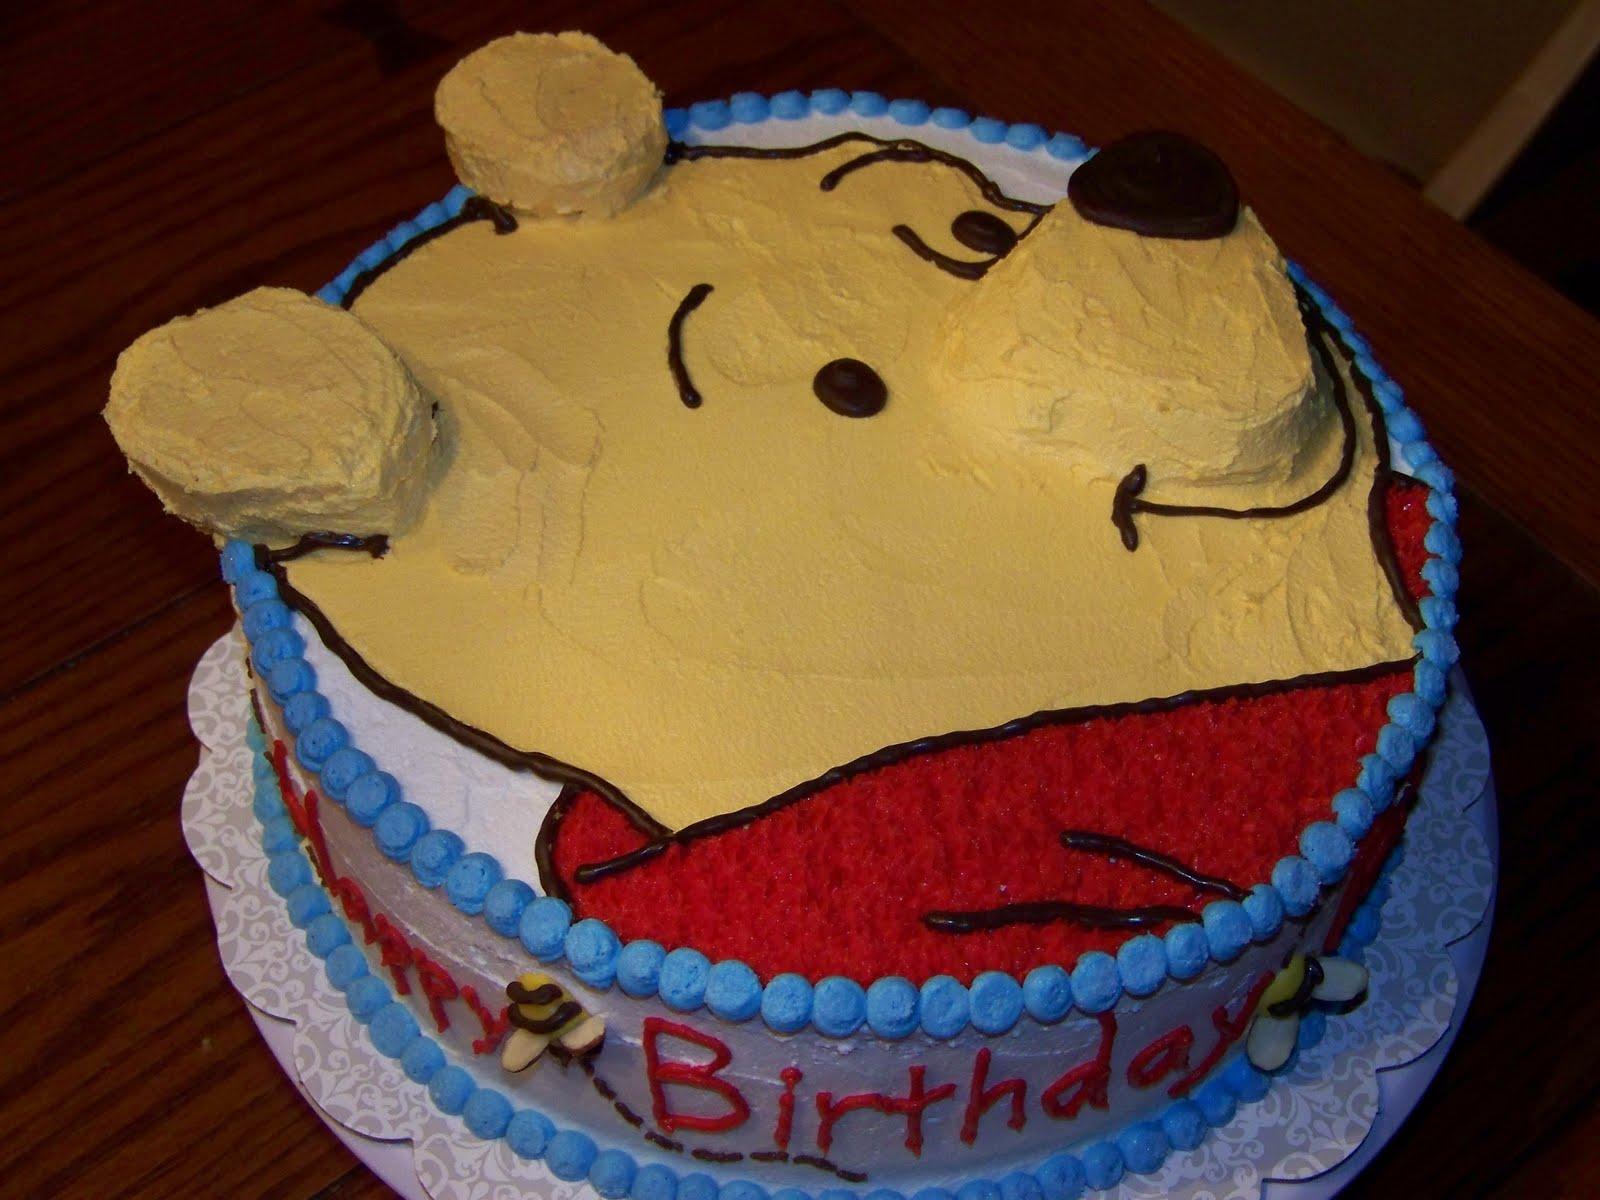 Cake Design Winnie Pooh : Winnie The Pooh Cake Designs Instructions Ideas Pictures ...